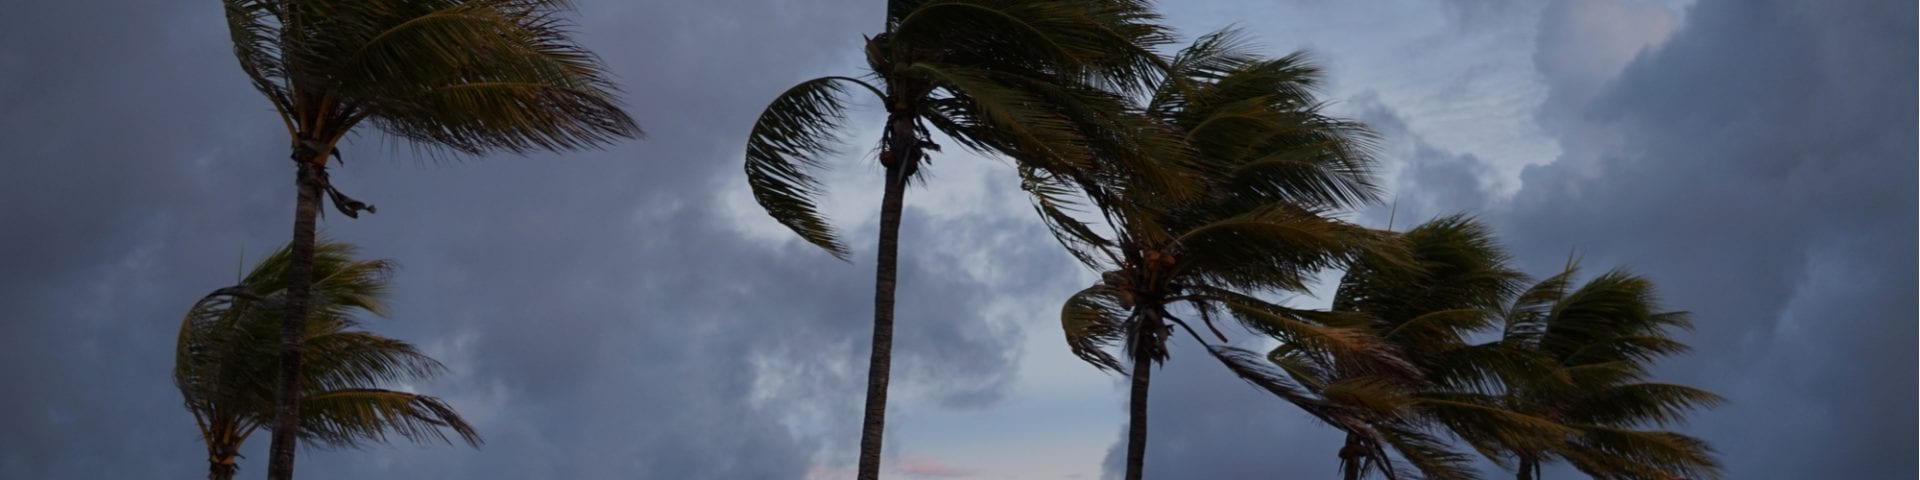 A Moldy Summer and the Three H's: Hot, Humid and Hurricanes